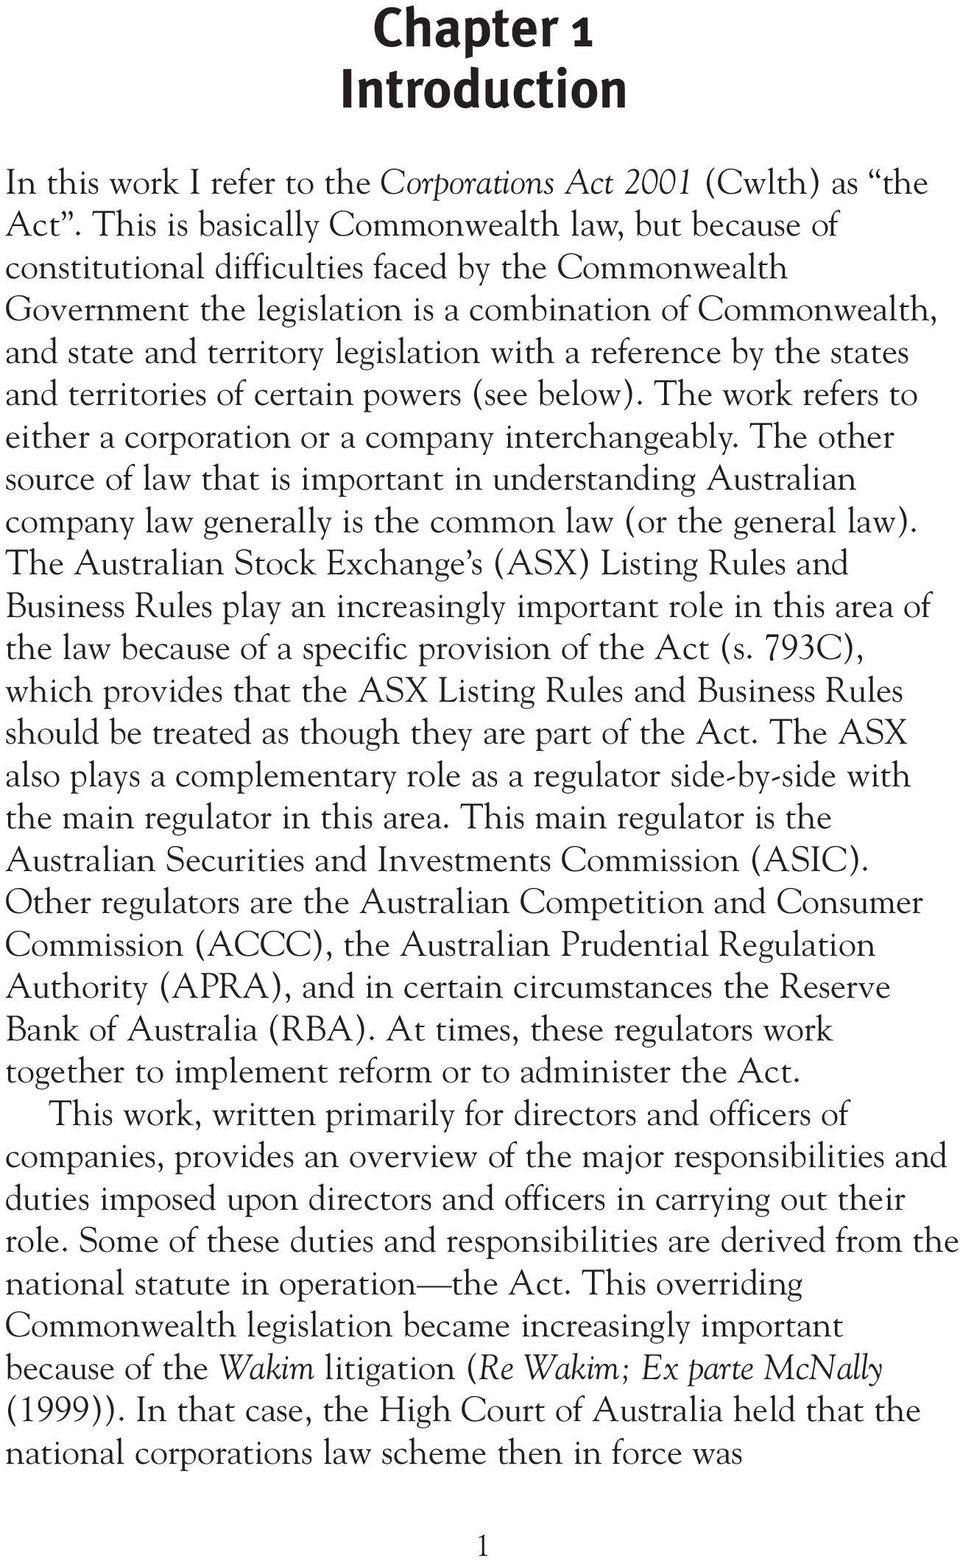 legislation with a reference by the states and territories of certain powers (see below). The work refers to either a corporation or a company interchangeably.